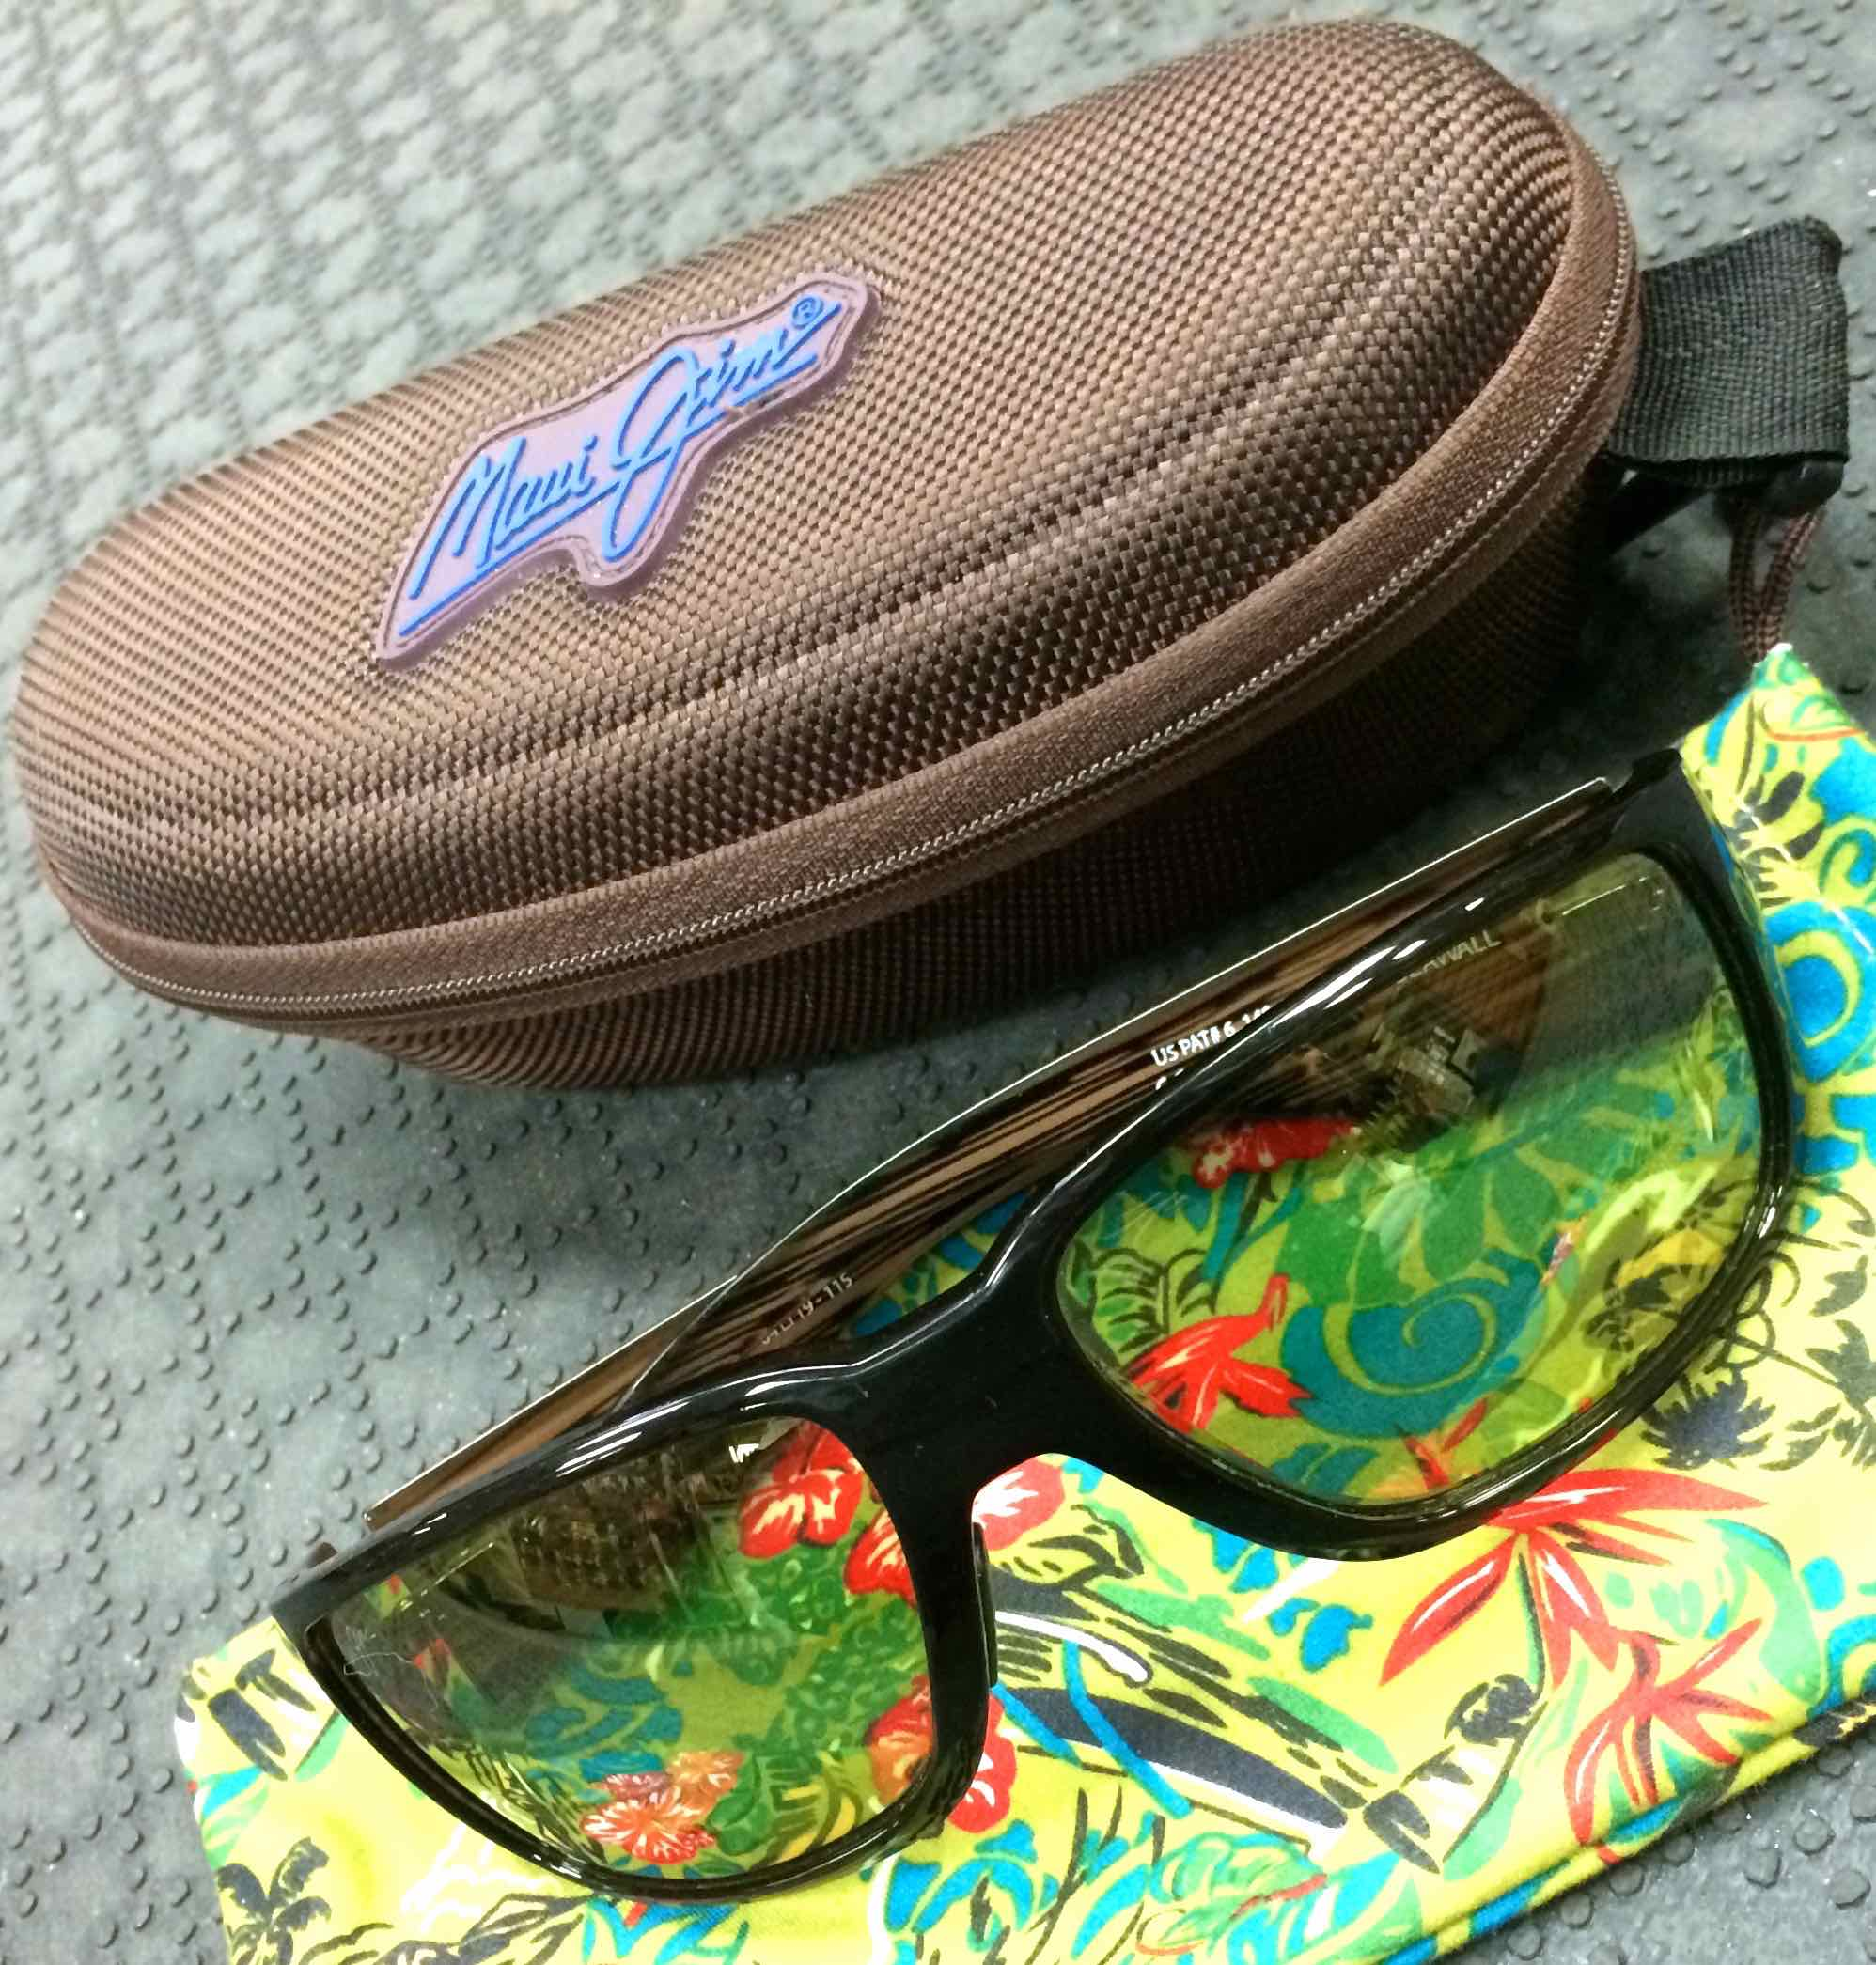 6dda61cc3b2 SOLD - Maui Jim - Seawall - Polarized Sunglasses - Like New !! - $80 ...